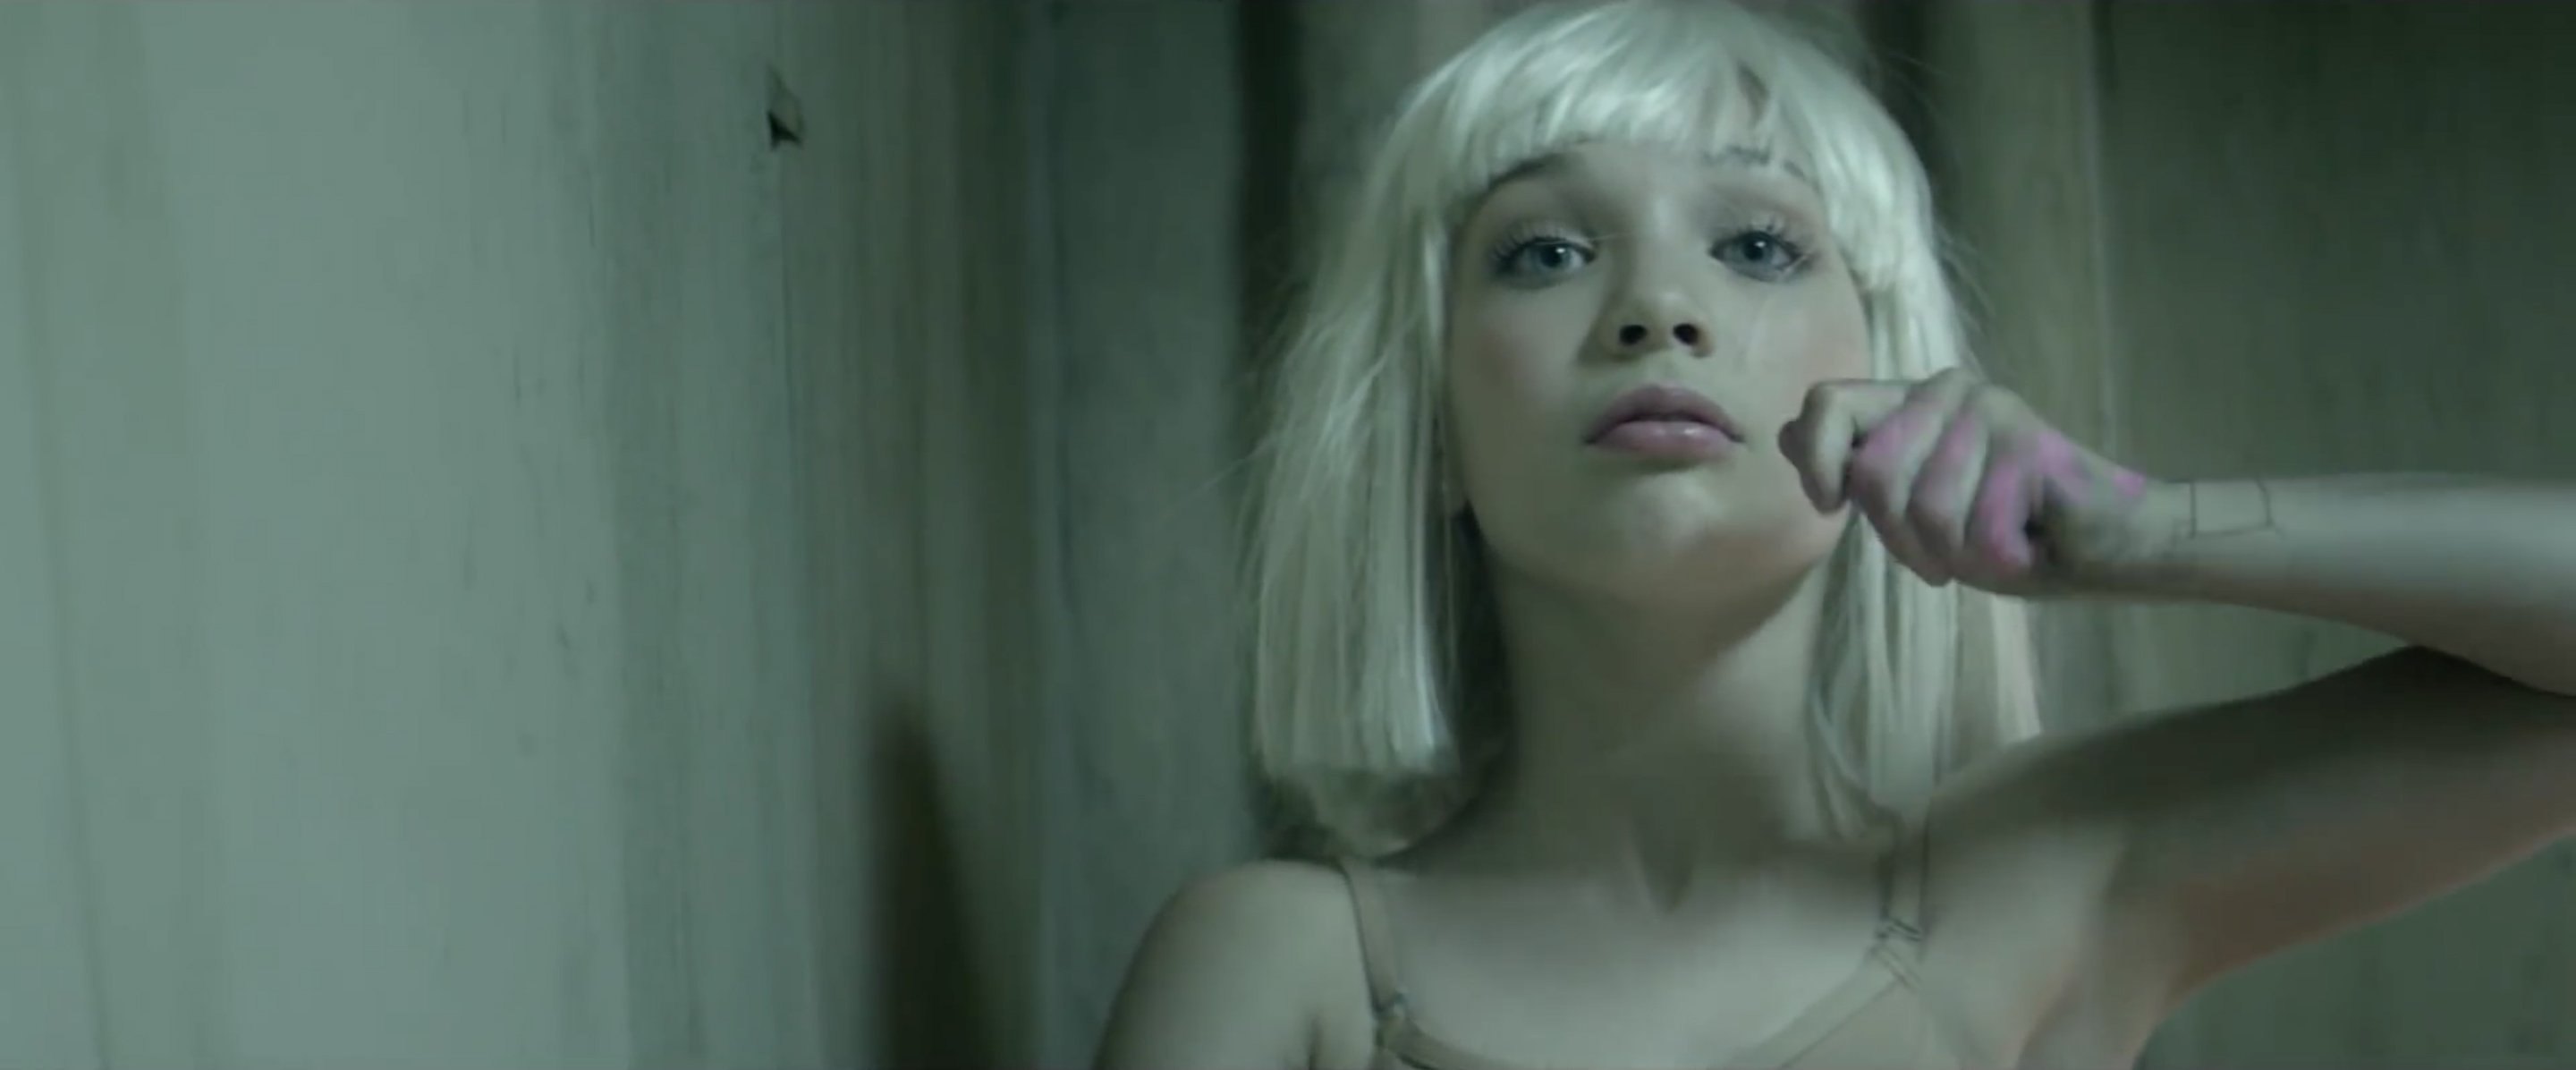 Sia Chandelier music video starring Maddie Ziegler - The ...